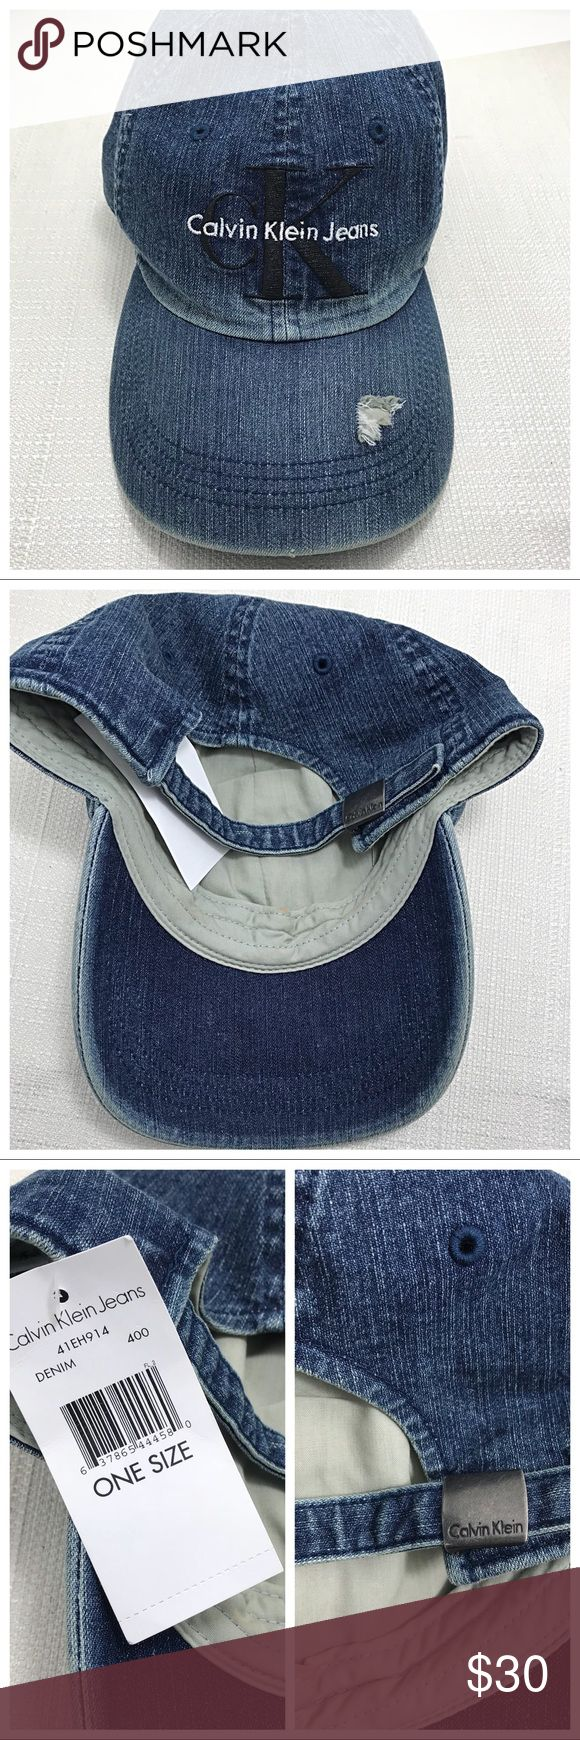 NWT | Calvin Klein Denim Hat Classic baseball style hat by Calvin Klein. Denim construction with black and white logo embroidered detailing, factory distressing on brim. Adjustable back. 100% cotton. NWT - excellent condition Calvin Klein Jeans Accessories Hats